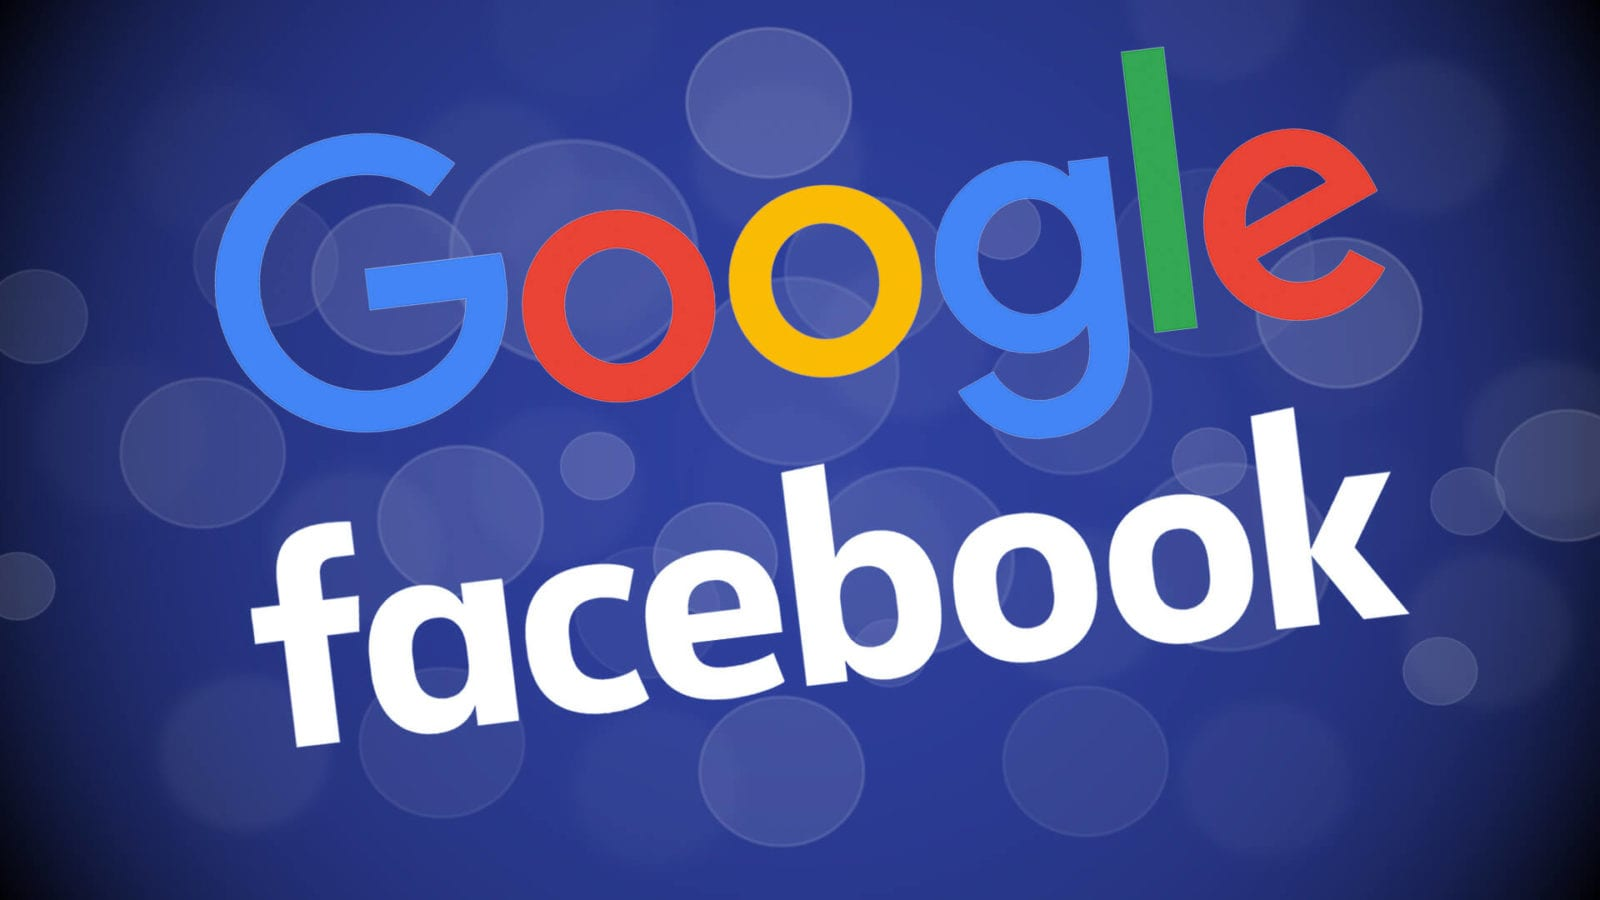 Google and Facebook lookalike audiencesGoogle and Facebook lookalike audiences